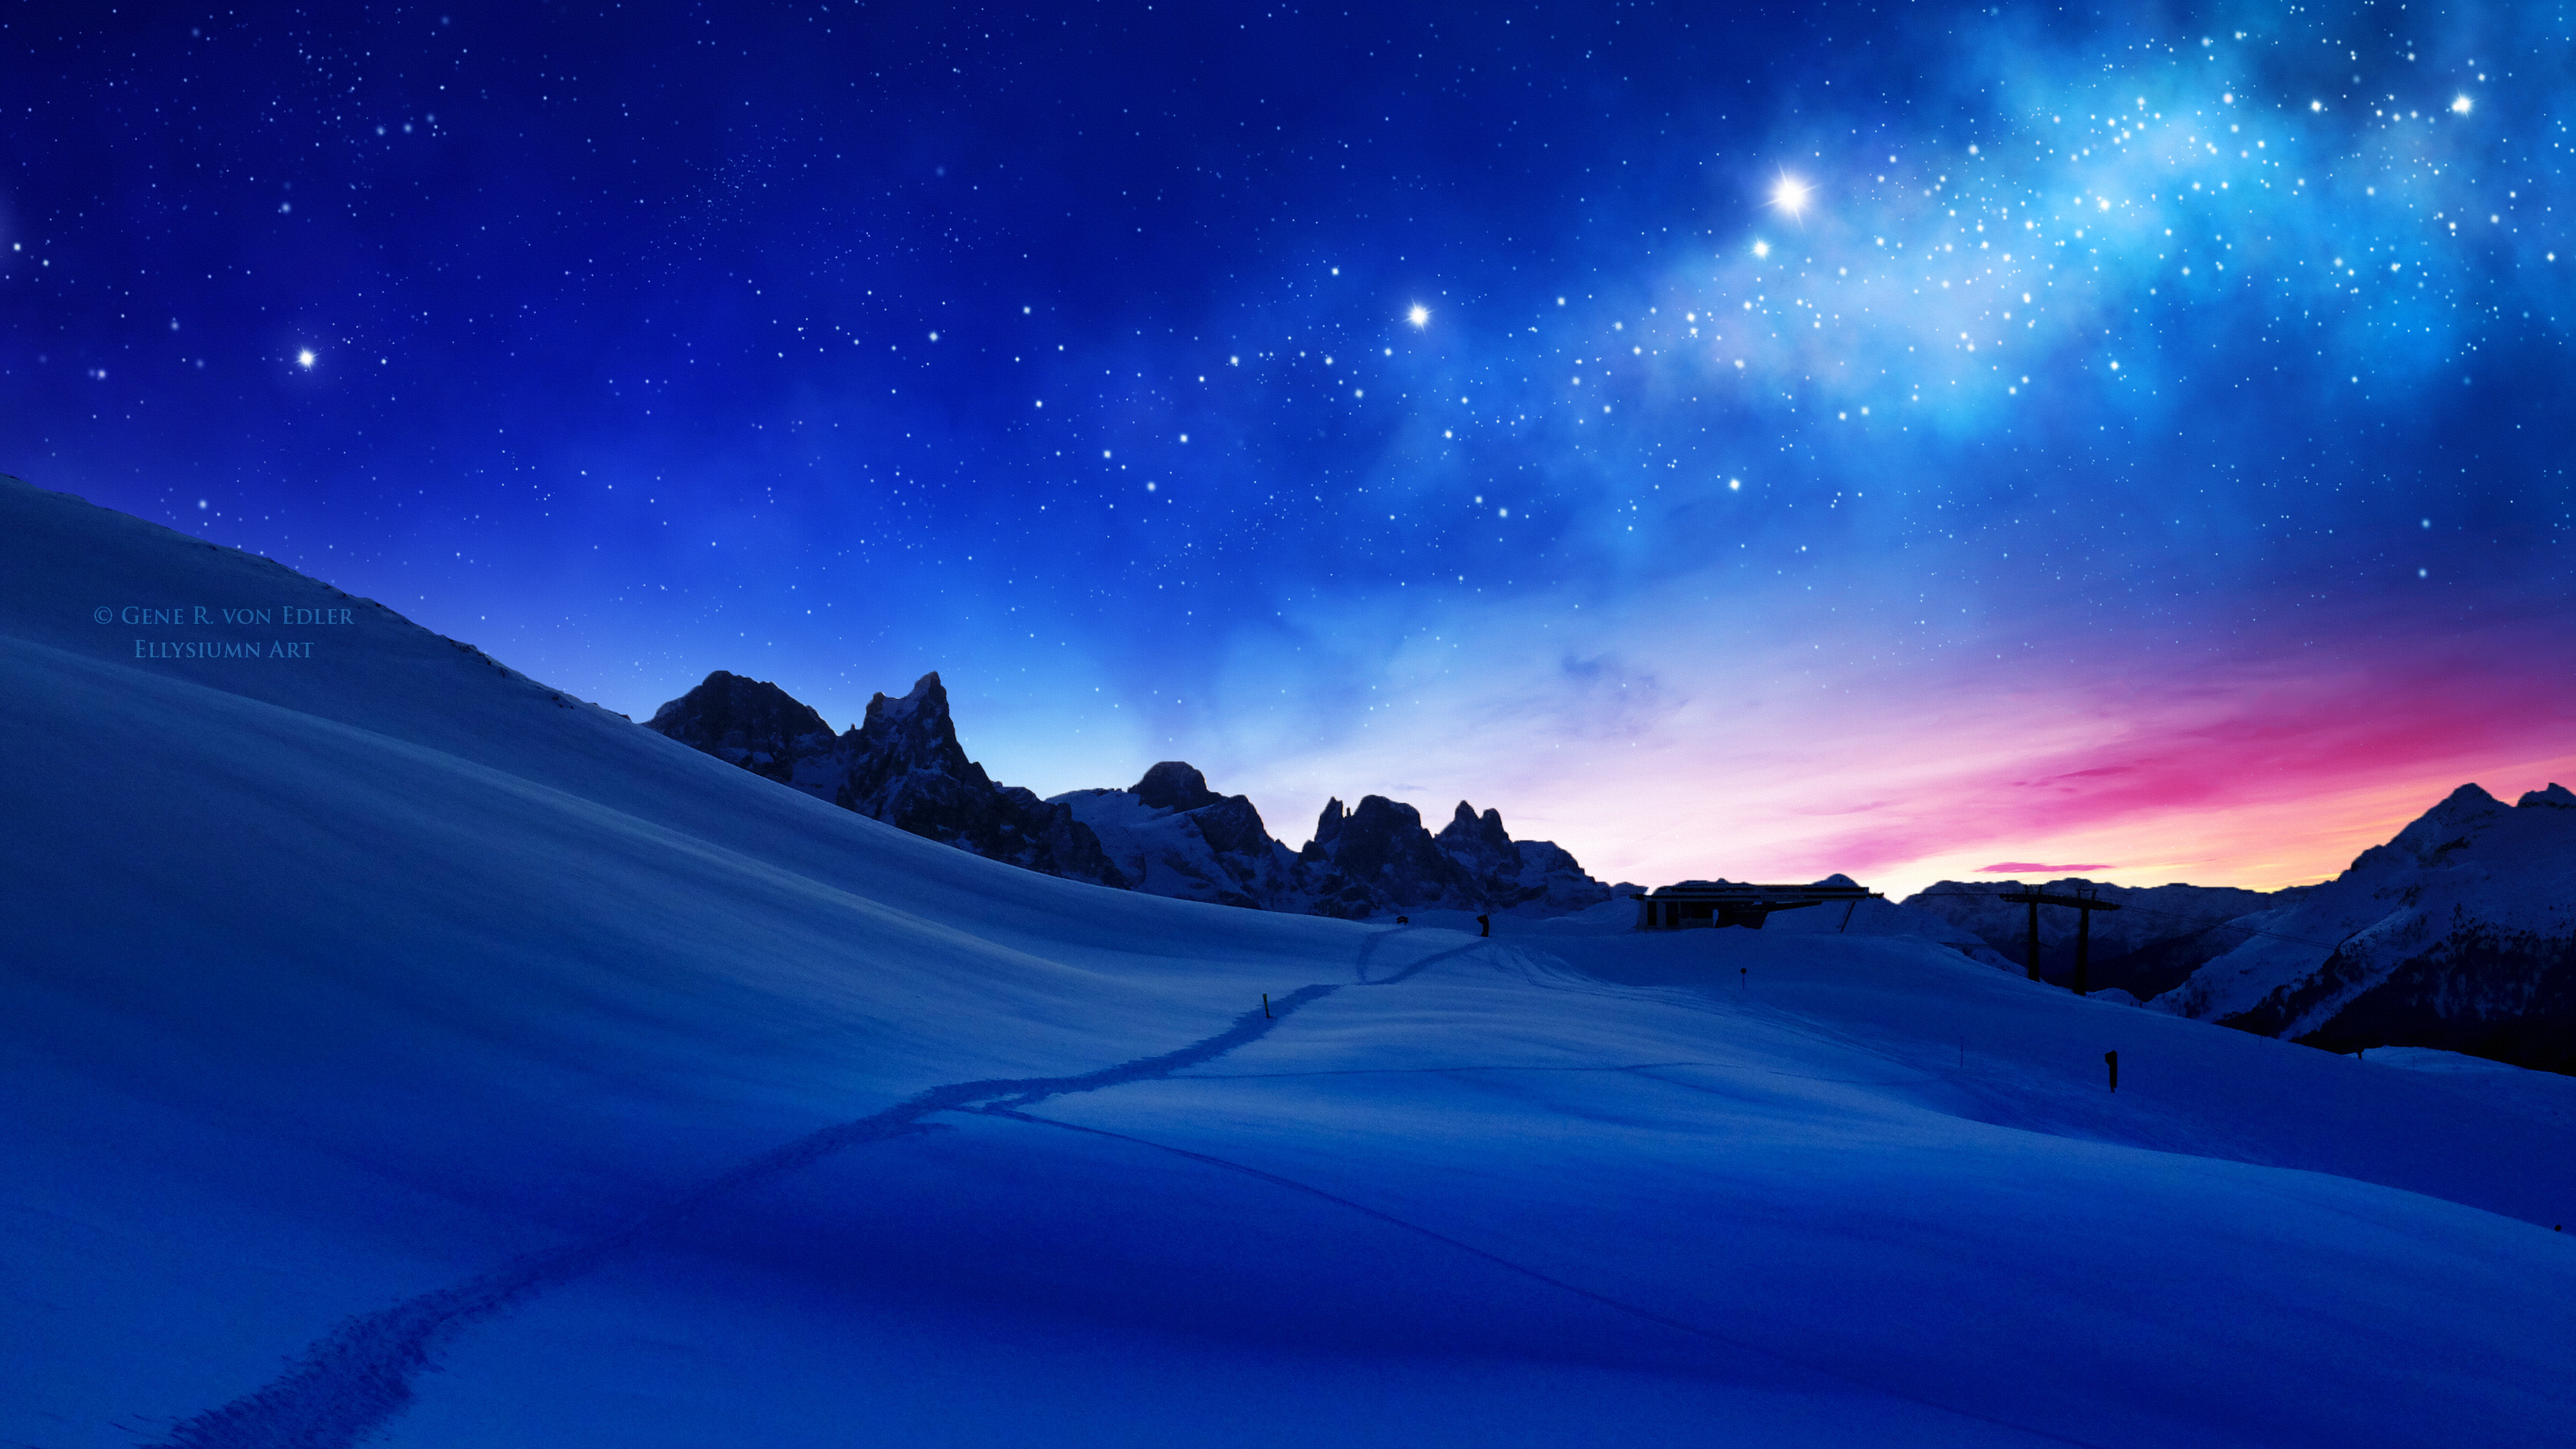 Blue Cool Sunset Hd Nature 4k Wallpapers Images Backgrounds Photos And Pictures